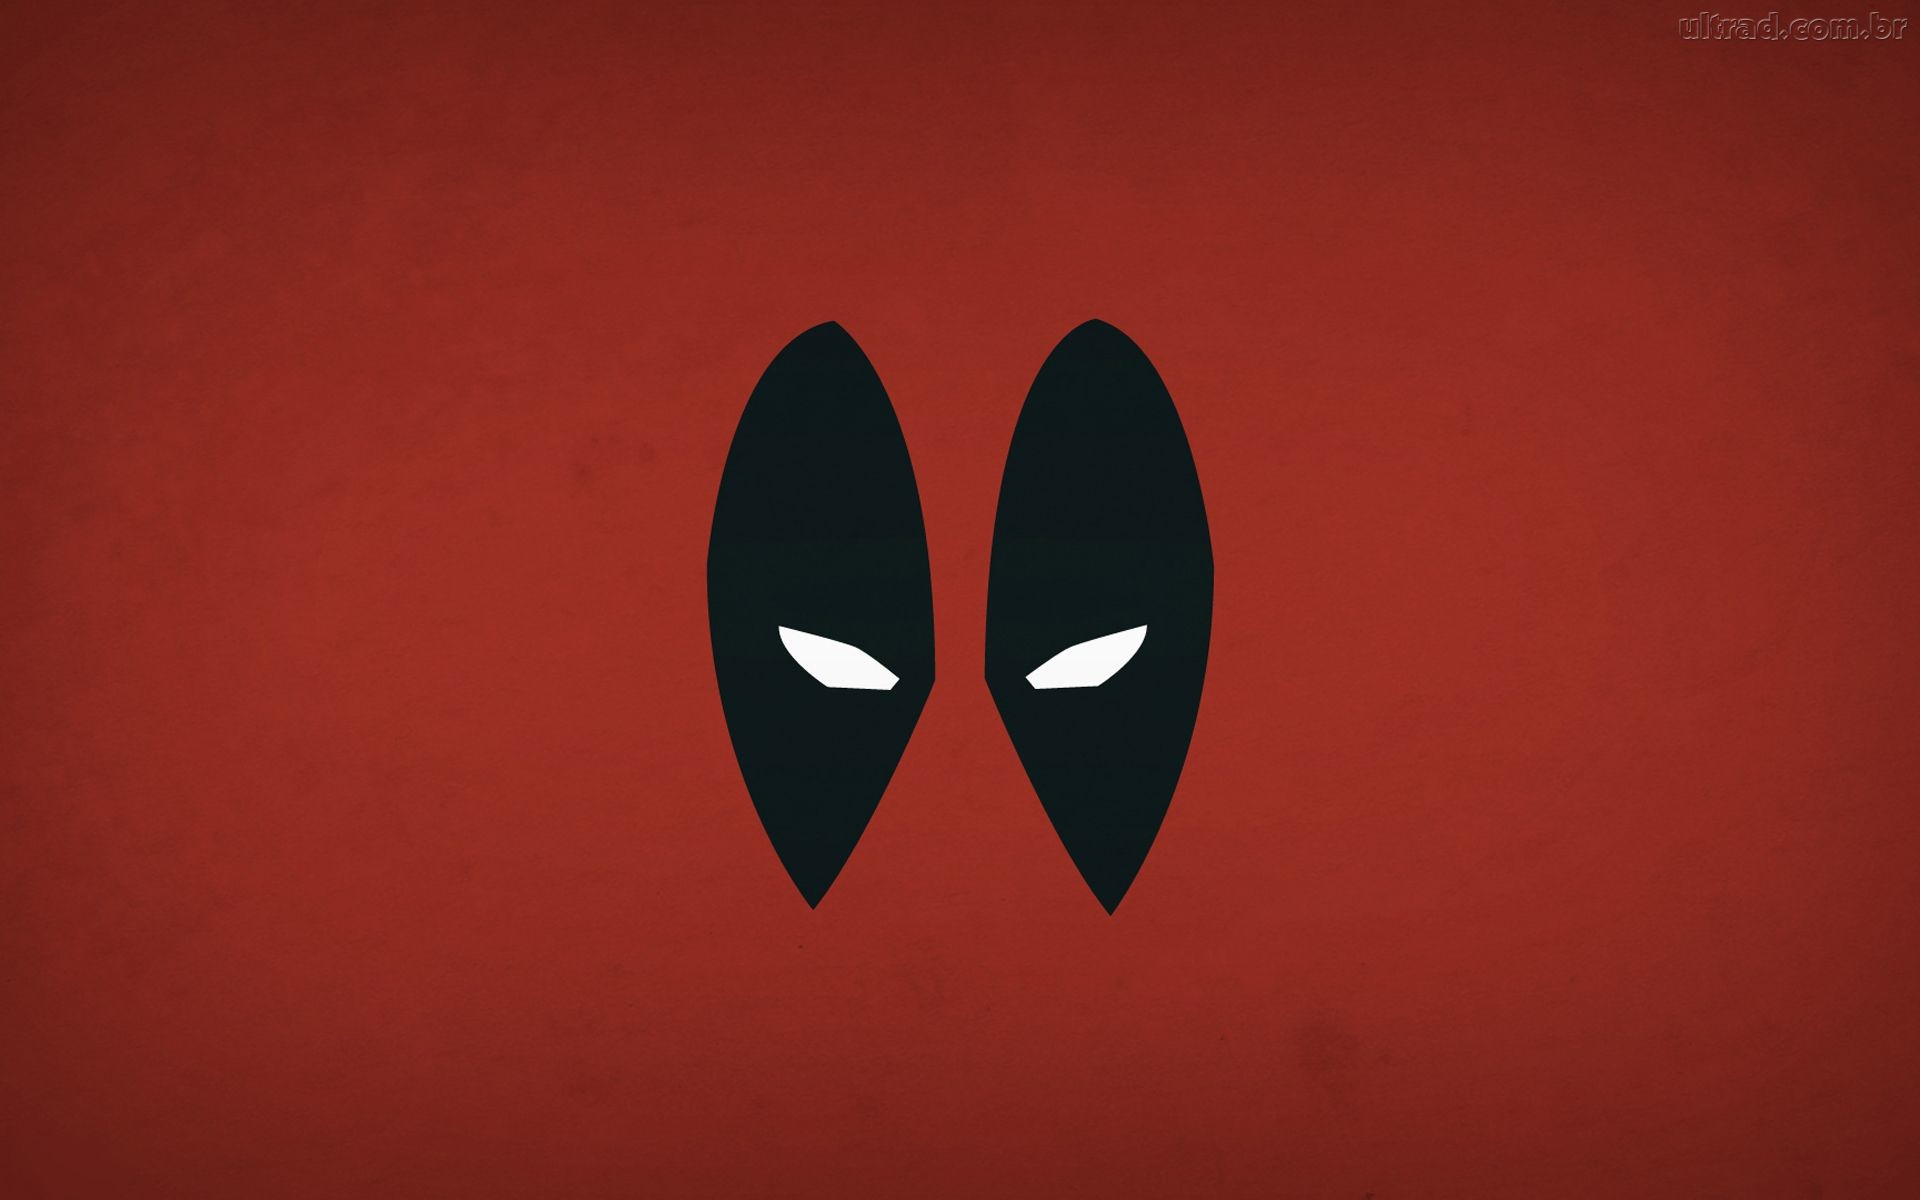 1920x1200 Deadpool-Wallpaper-Full-HD-Free-Download-Wallpaperxyz-dot-